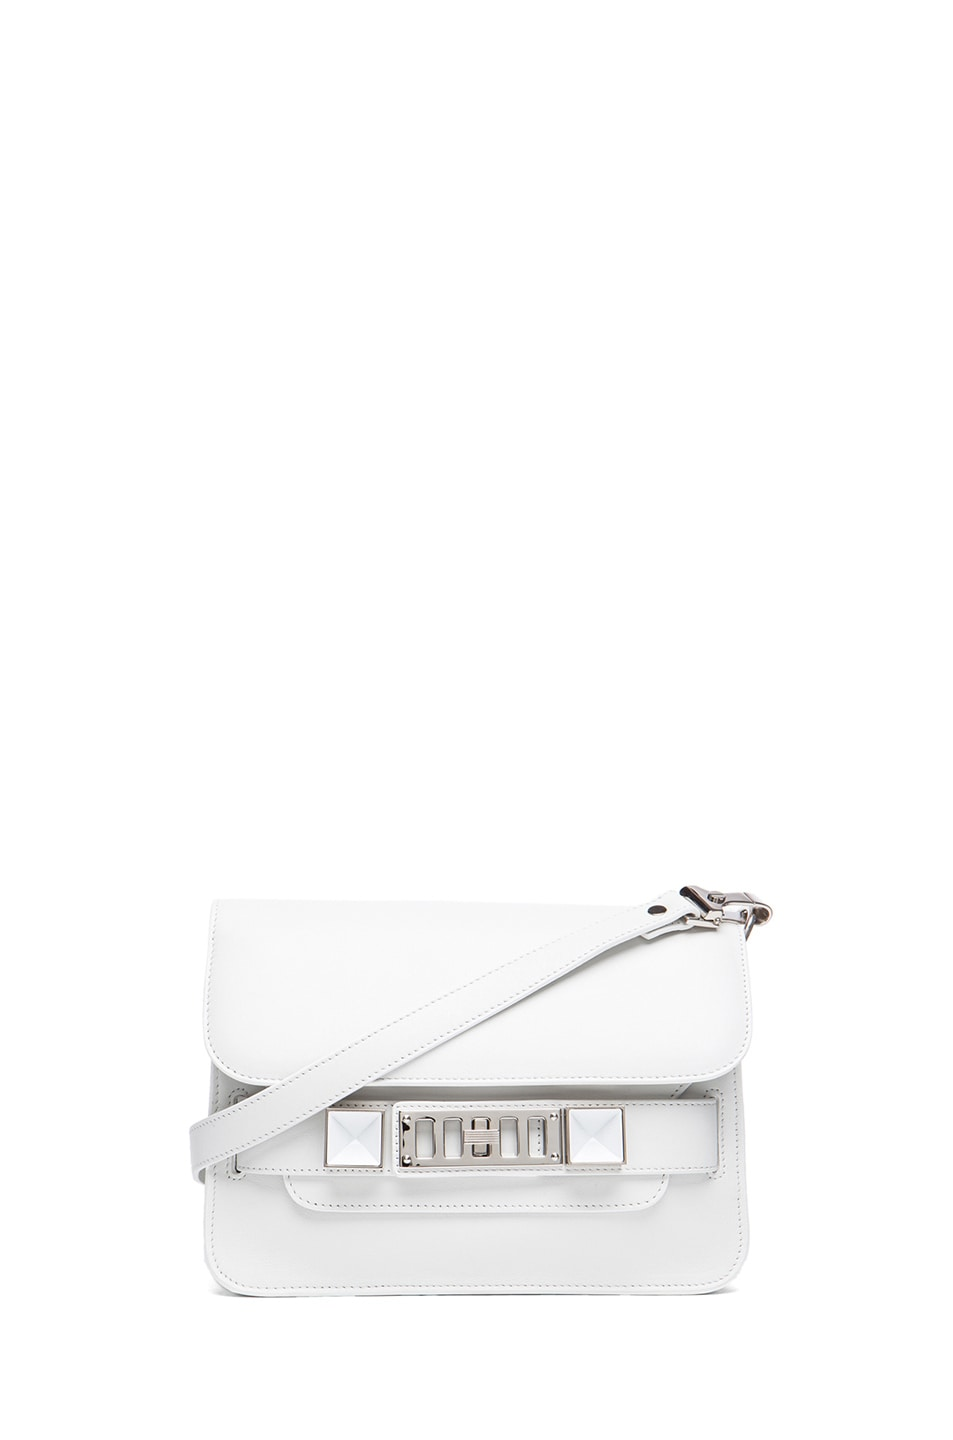 Image 1 of Proenza Schouler Mini PS11 Classic Smooth Leather Shoulder Bag in White